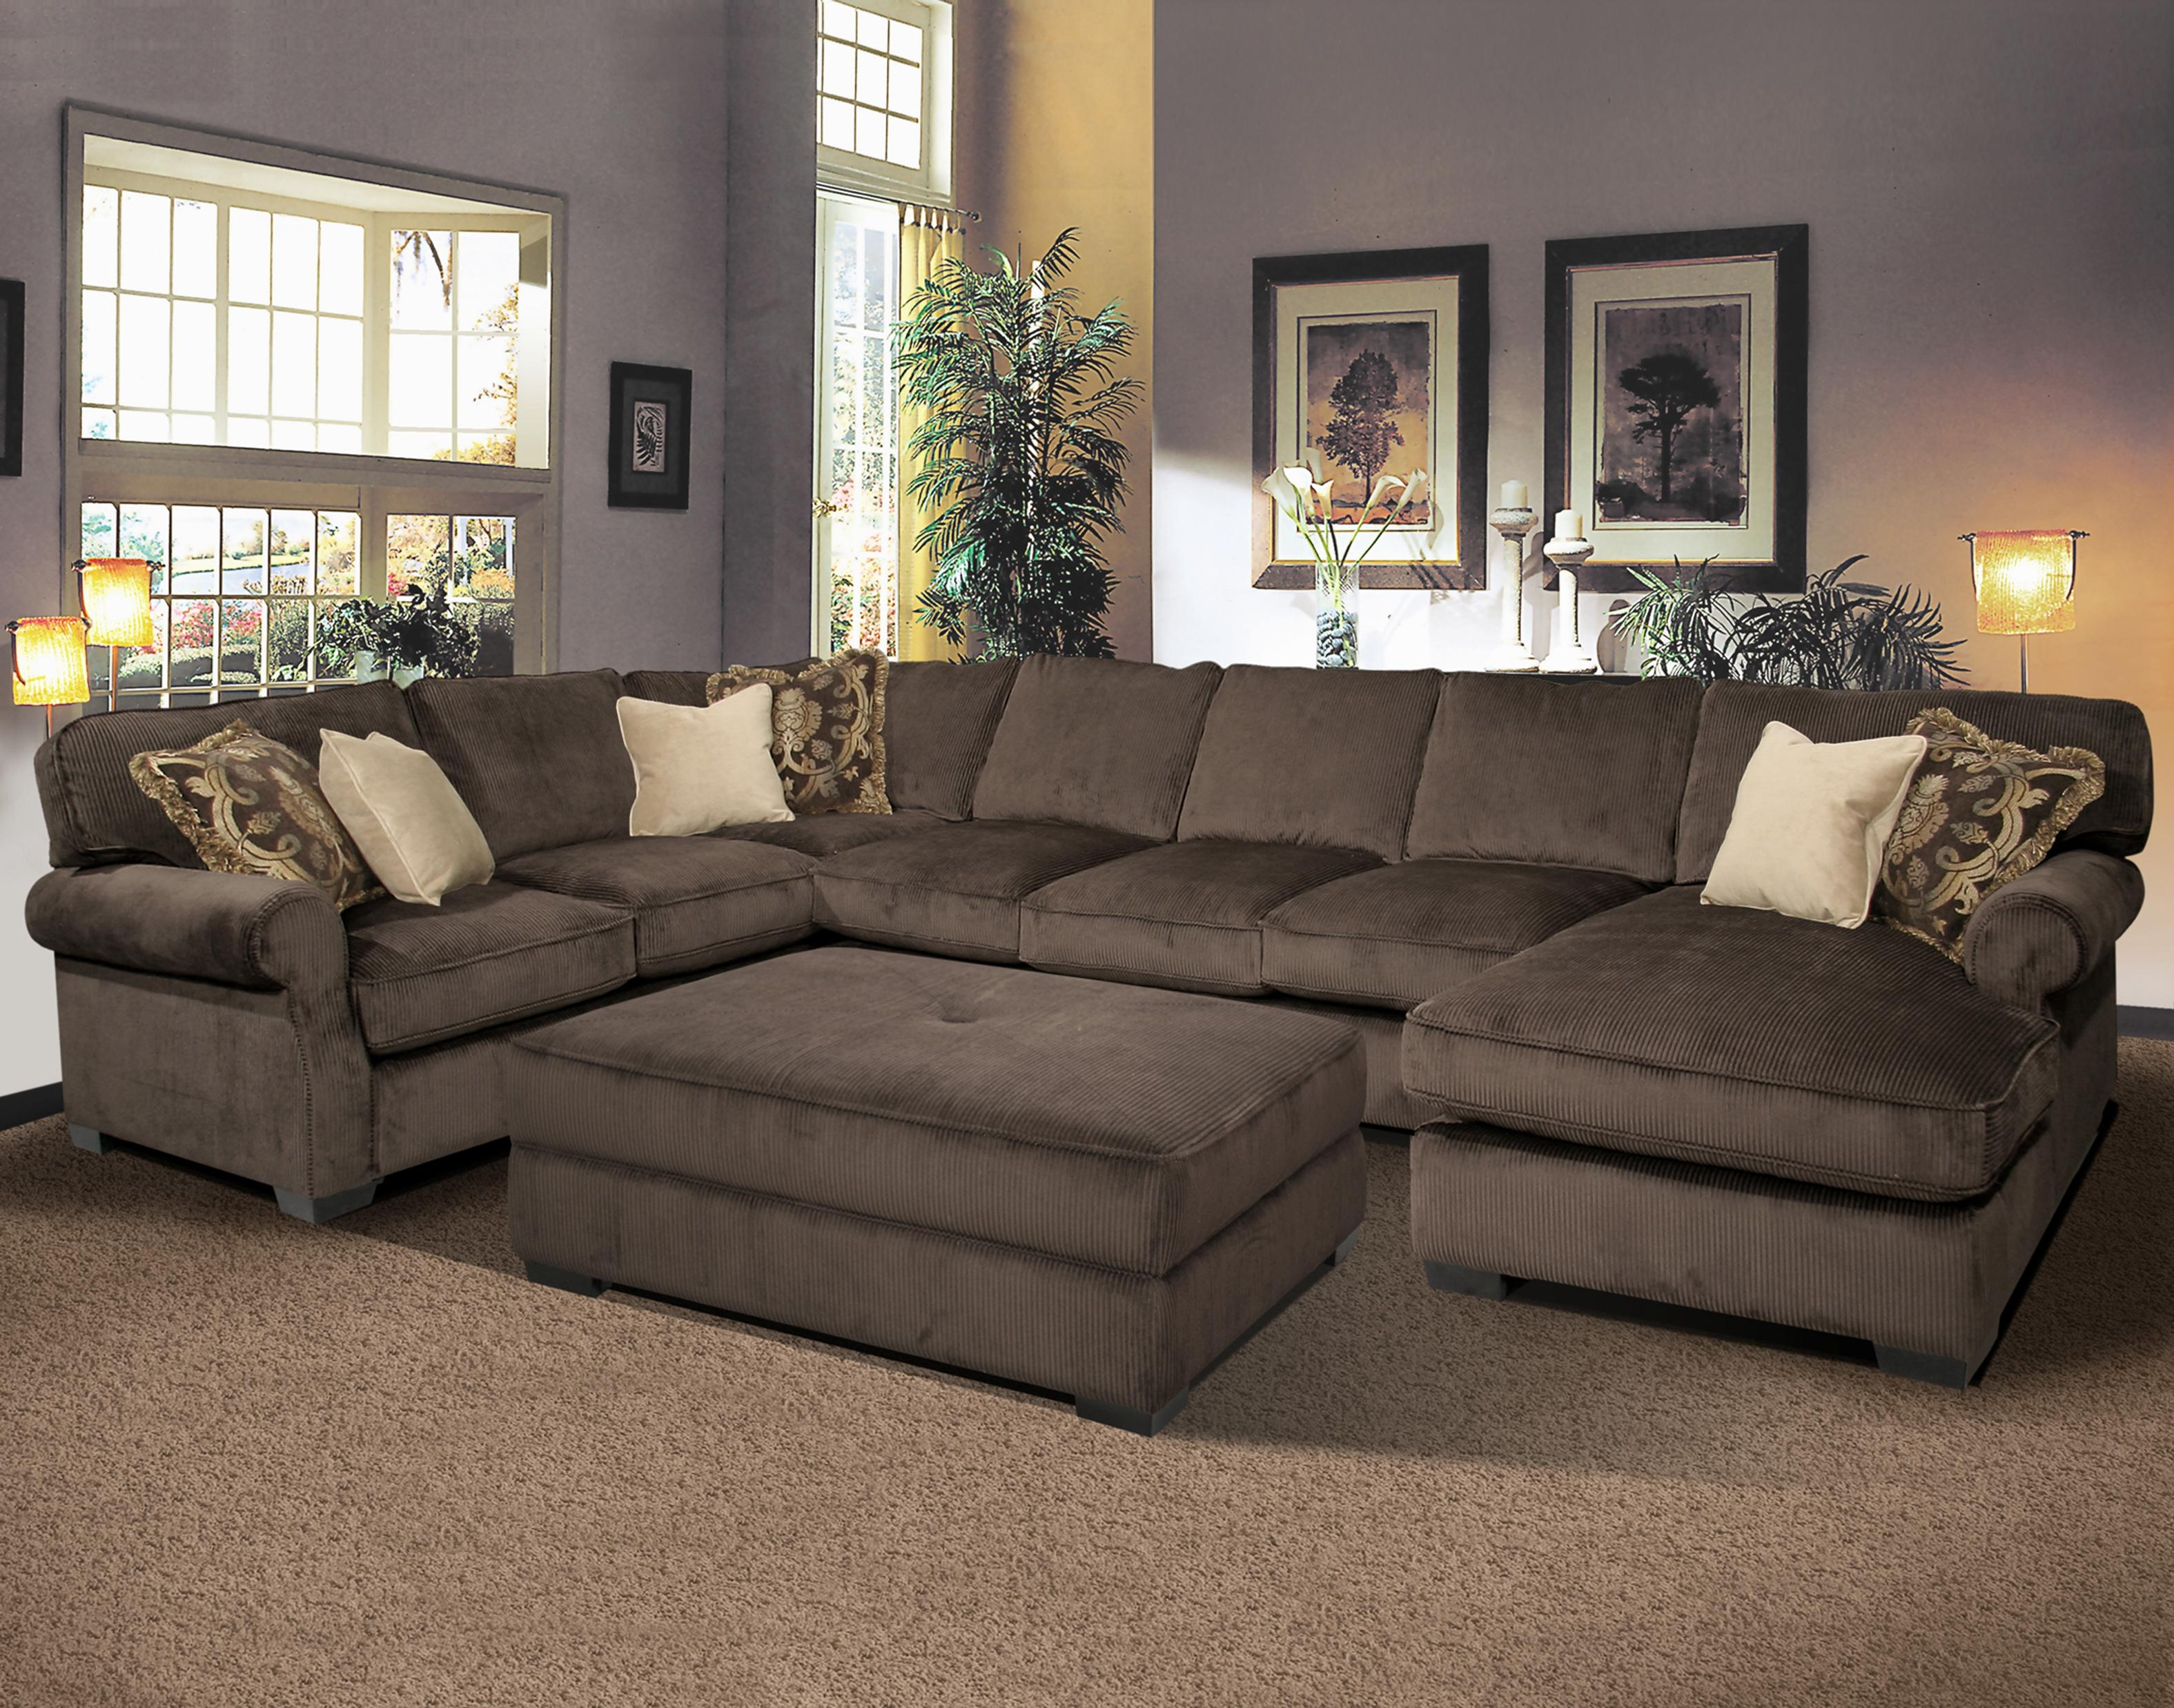 wide sofas sofa score sepsis ppt 12 best collection of extra sectional